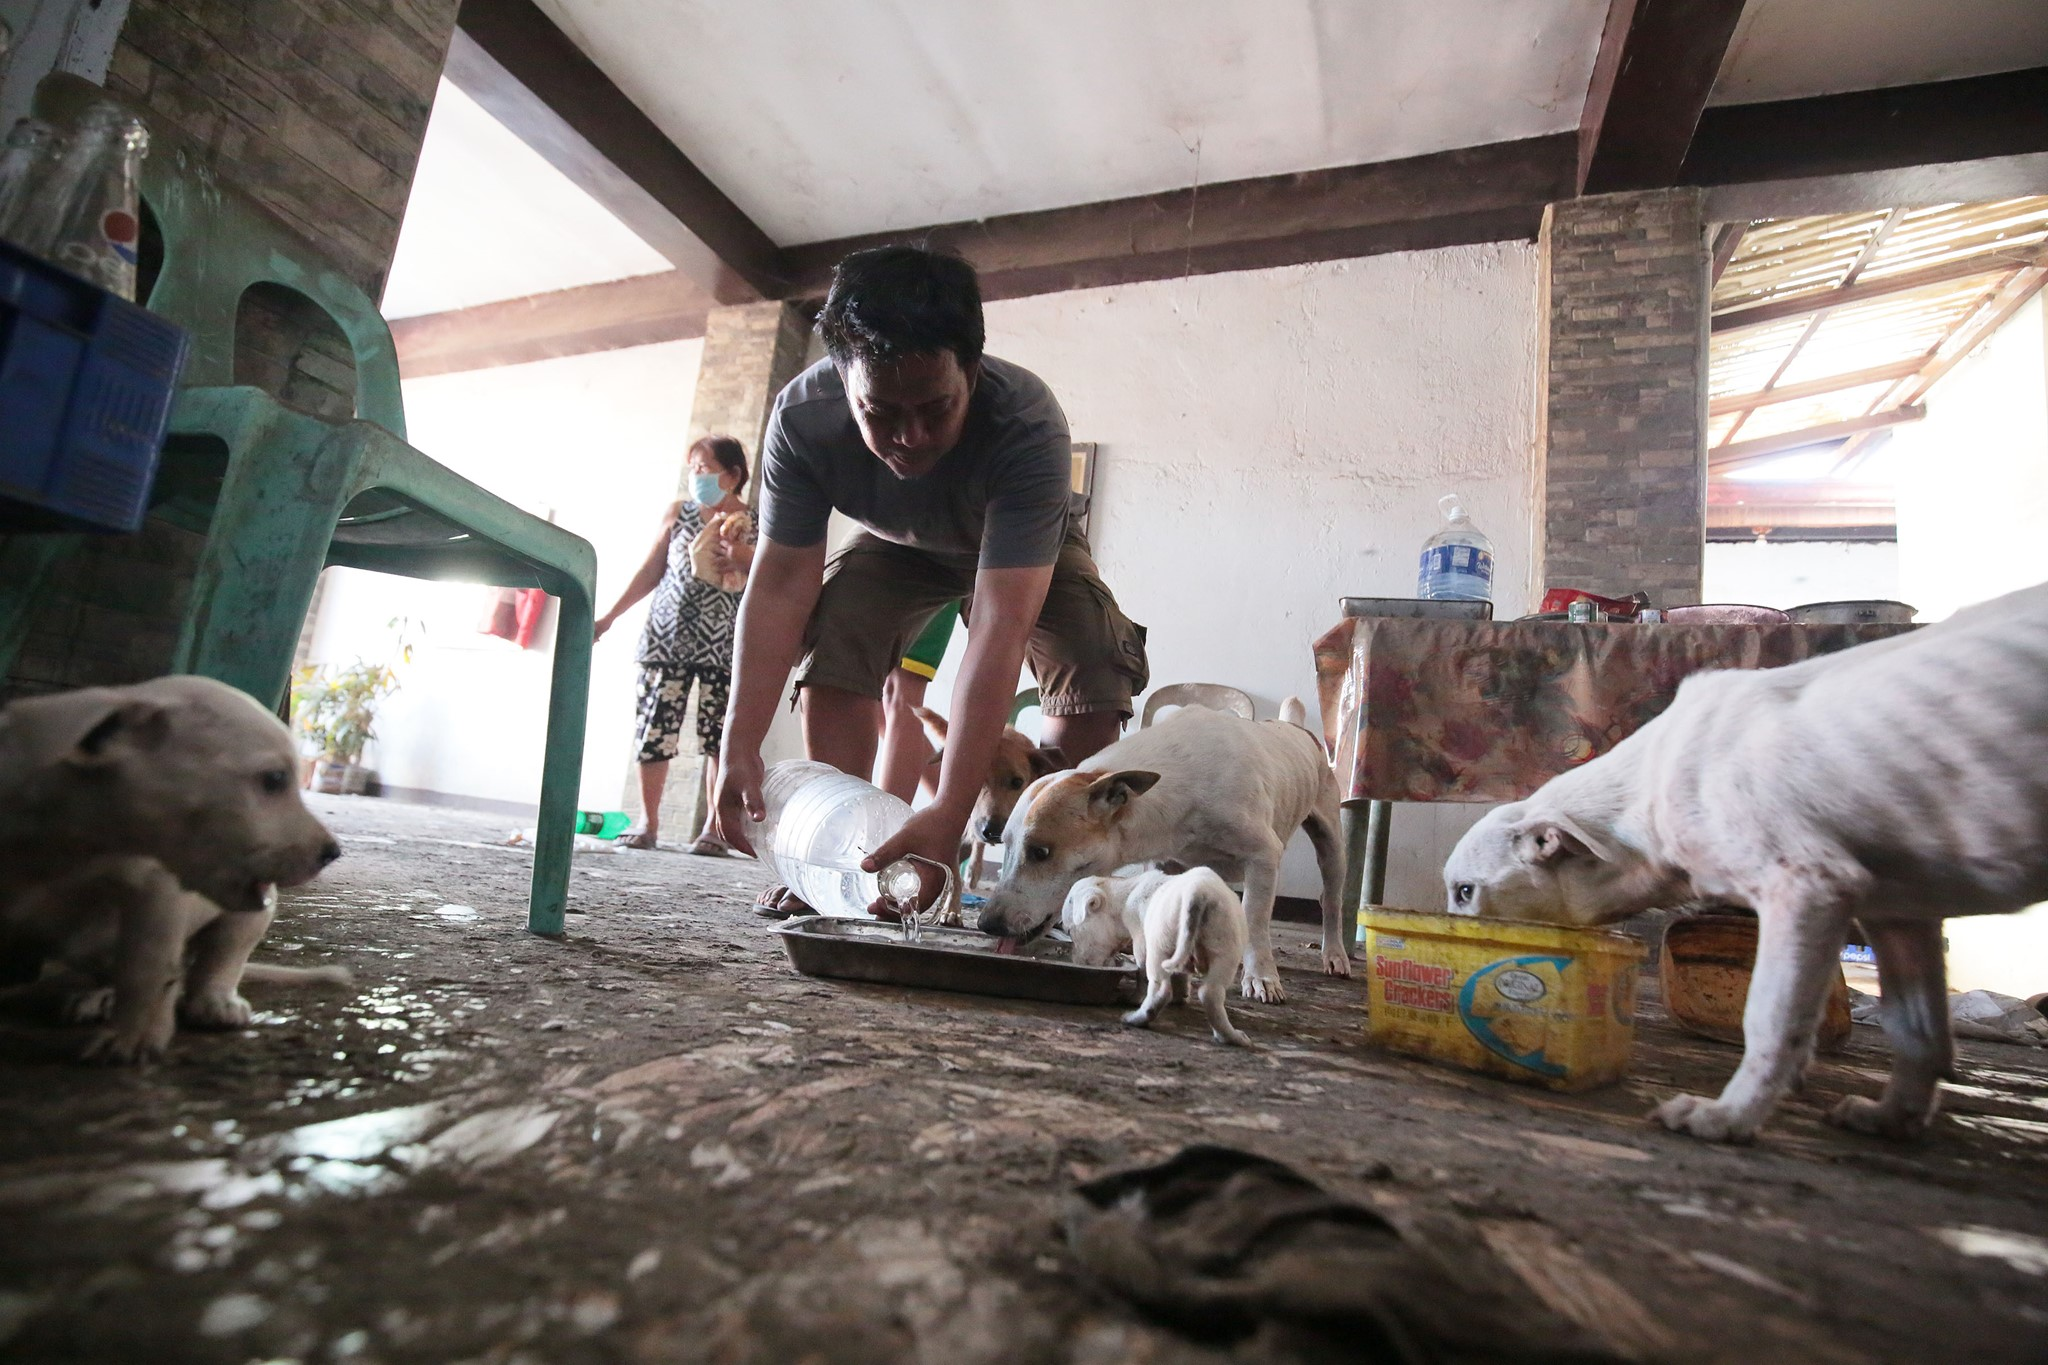 Manny Arandia feeds his dog after the lockdown was lifted in Lemery, Batangas two weeks following Taal Volcano's eruption. Phivolcs lowered the volcano's alert level to 3 on Sunday morning, January 26.